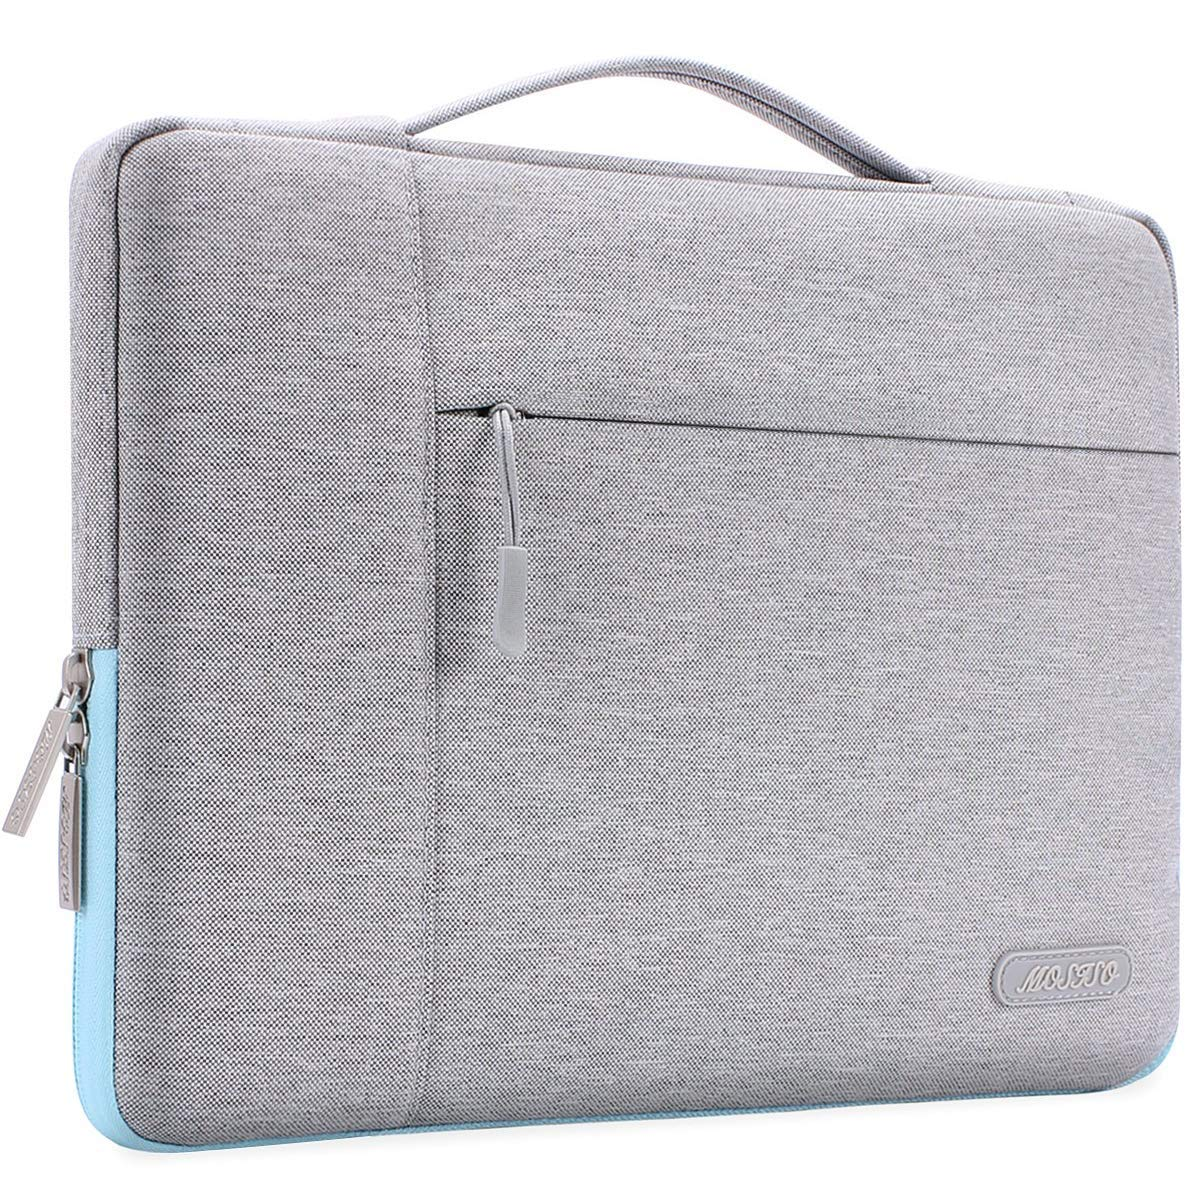 MOSISO Laptop Sleeve Compatible with 13-13.3 inch MacBook Air, MacBook Pro, Notebook Computer, Polyester Multifunctional Briefcase Handbag Carrying Case Cover Bag, Gray&Hot Blue